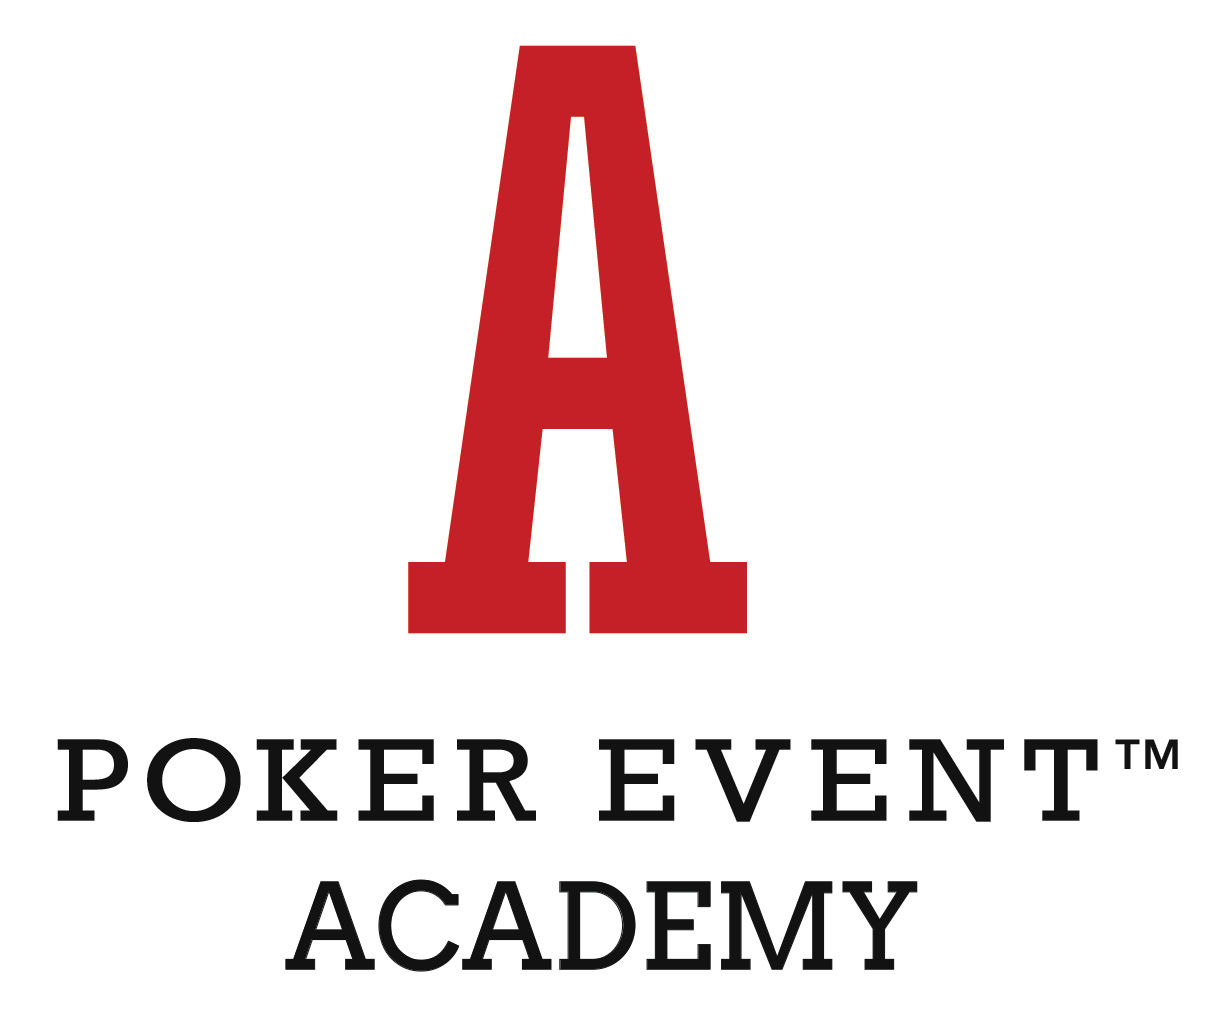 Pokerevent Academy